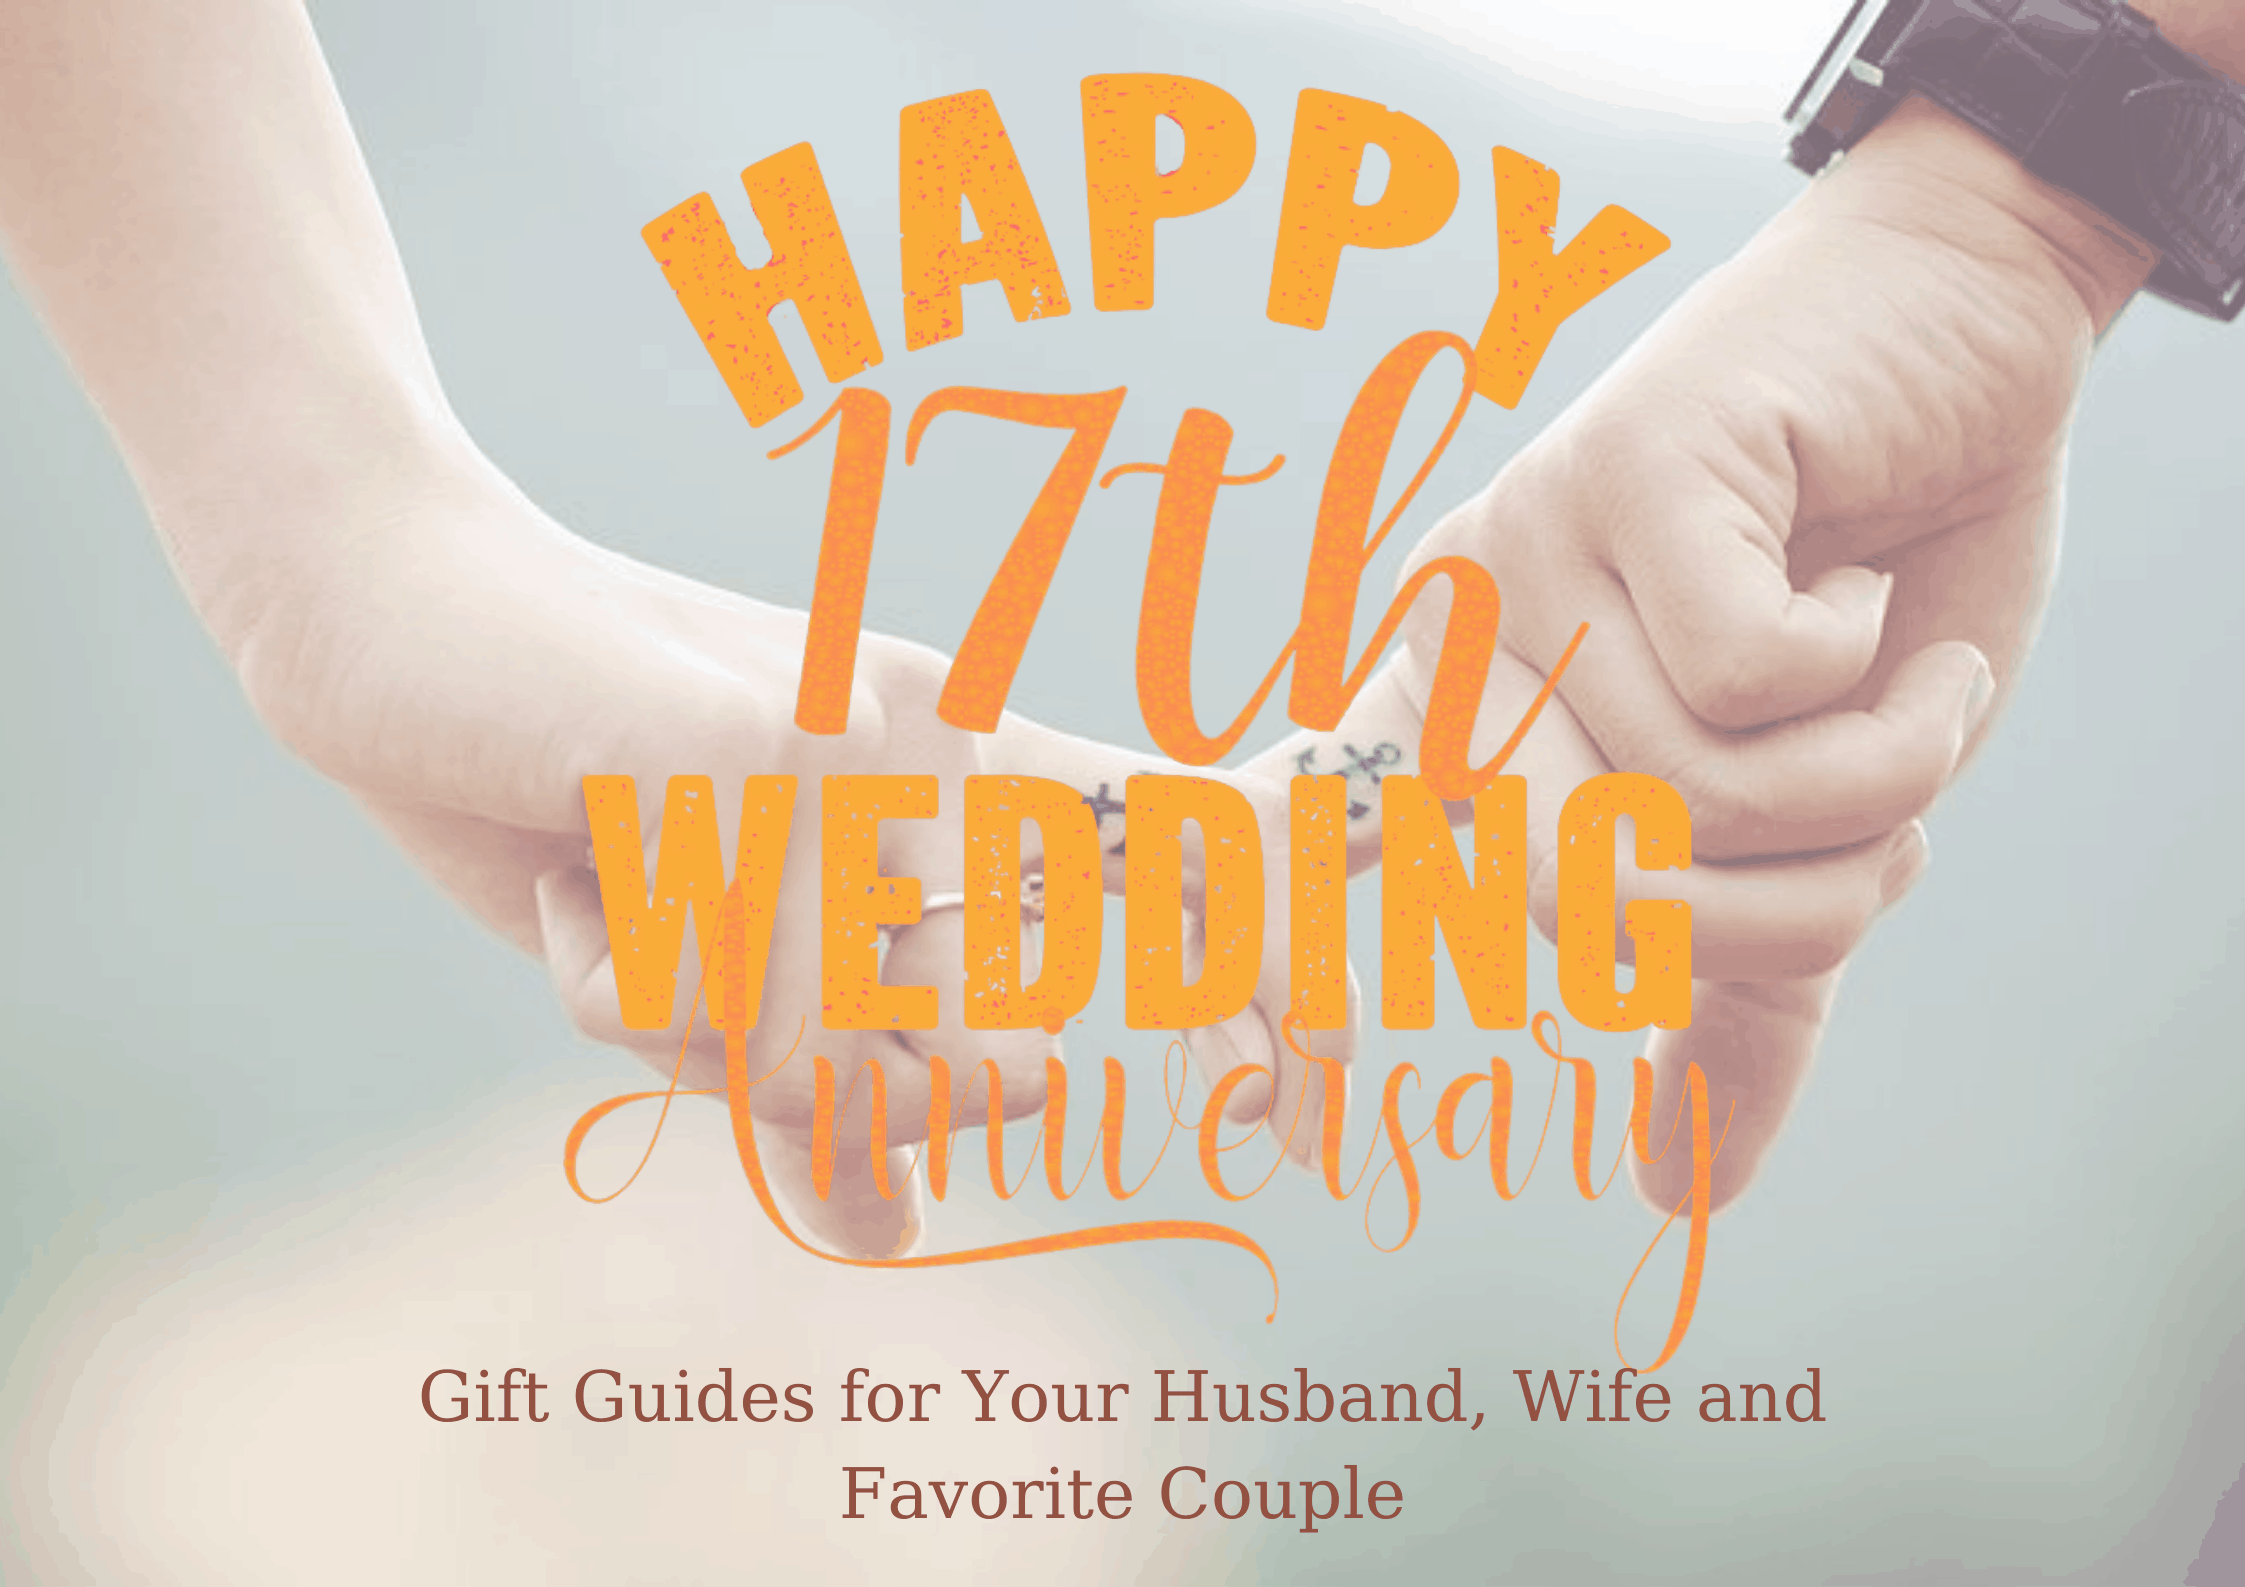 17th Anniversary Gift for Your Husband, Wife and Favorite Couple